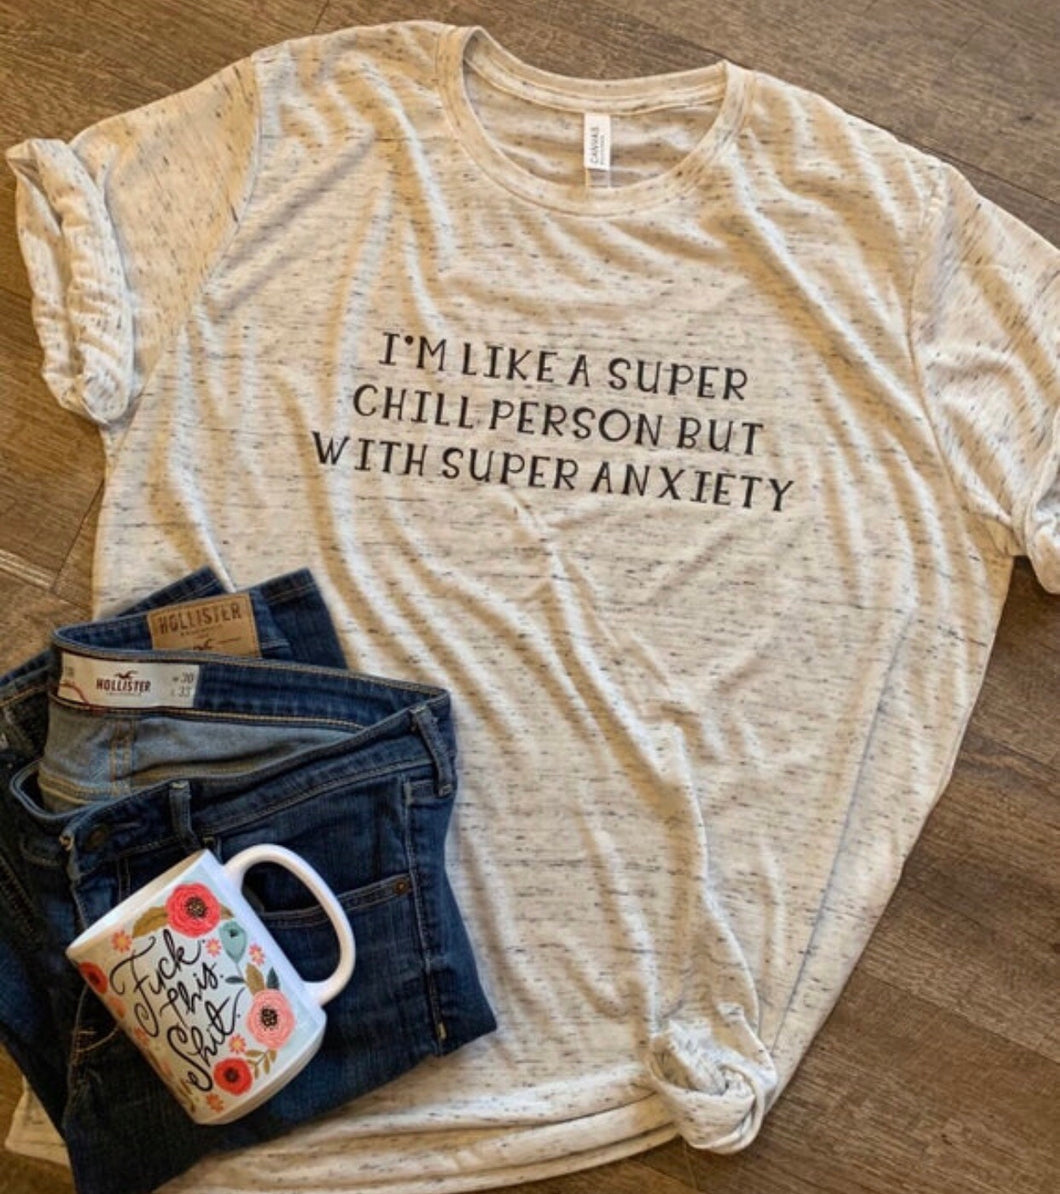 I'm like a super chill person with super anxiety funny womens graphic tee. Bella canvas. - Mavictoria Designs Hot Press Express